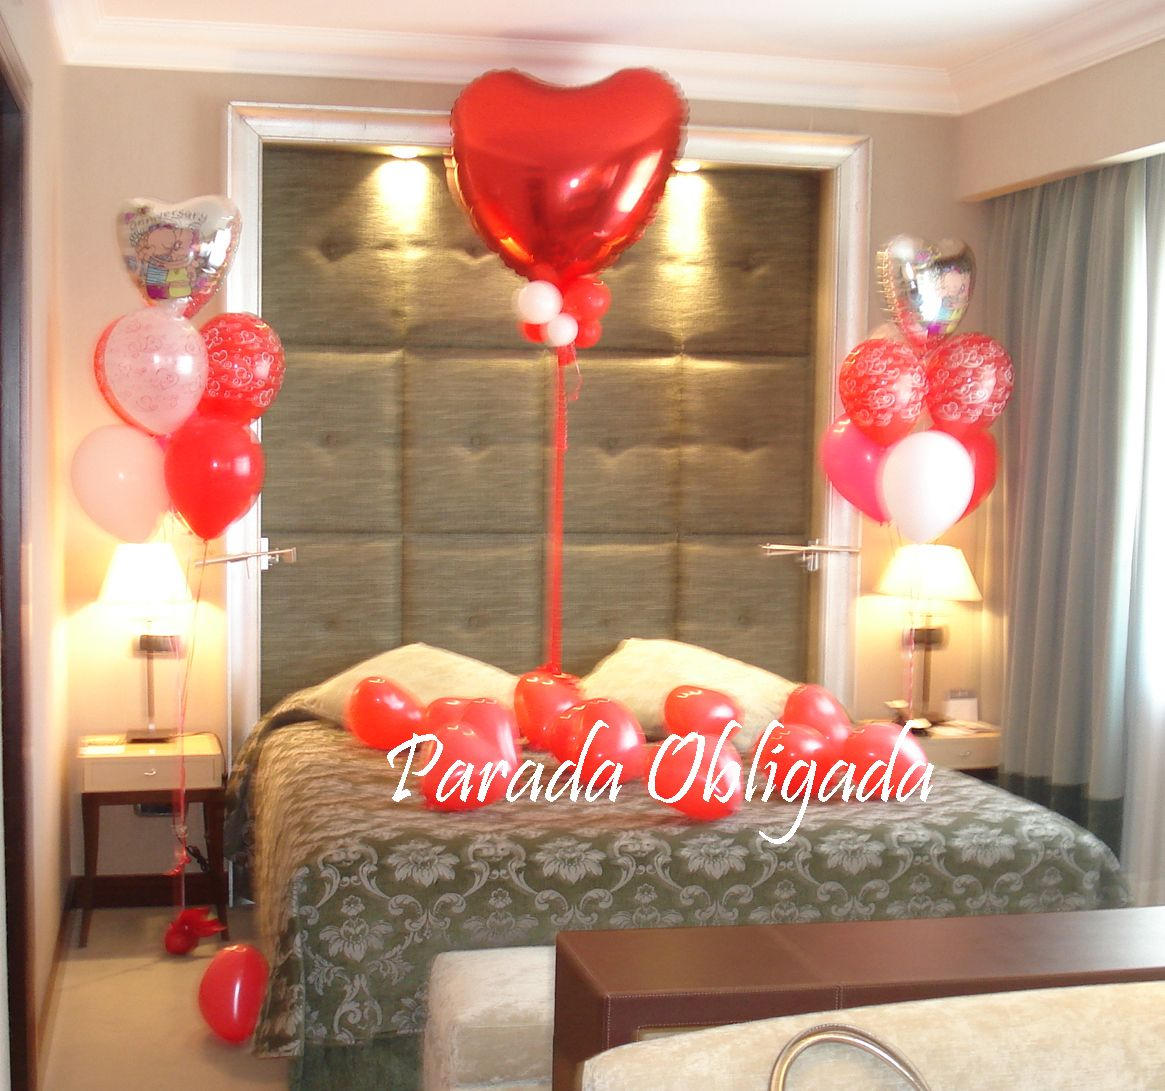 Decoracion habitacion de novios ideas rom nticas for Cuartos decorados romanticos con globos